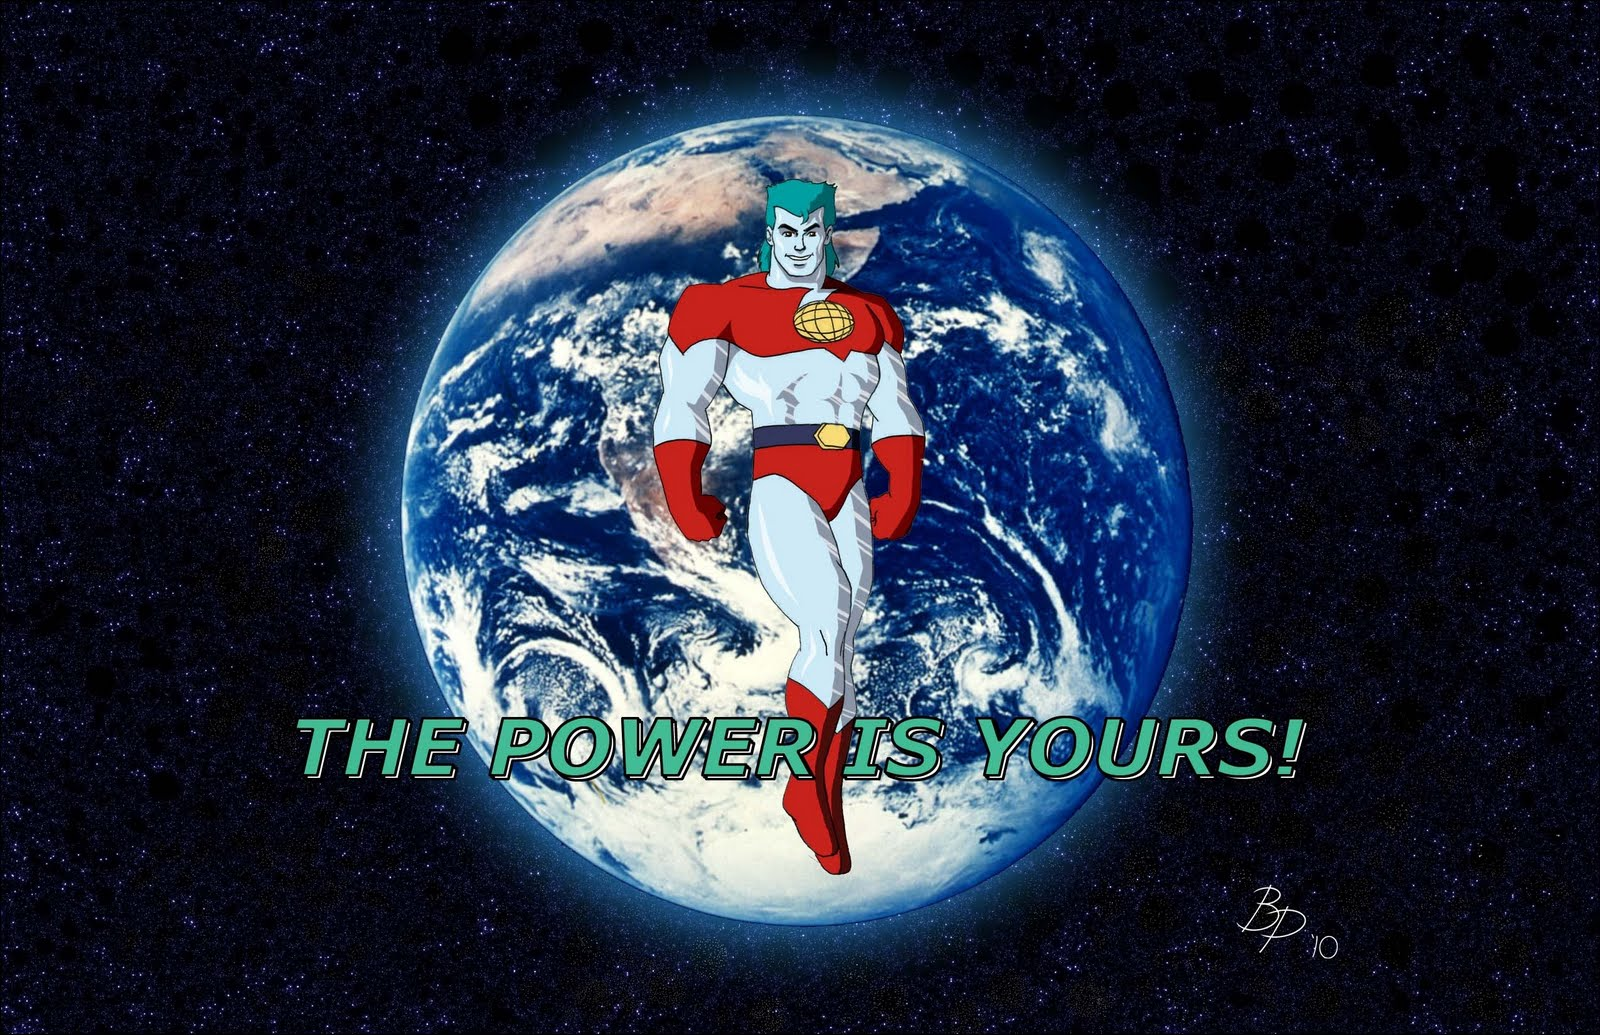 IMAGE(http://kartriter.files.wordpress.com/2012/06/captain-planet-2c.jpg)